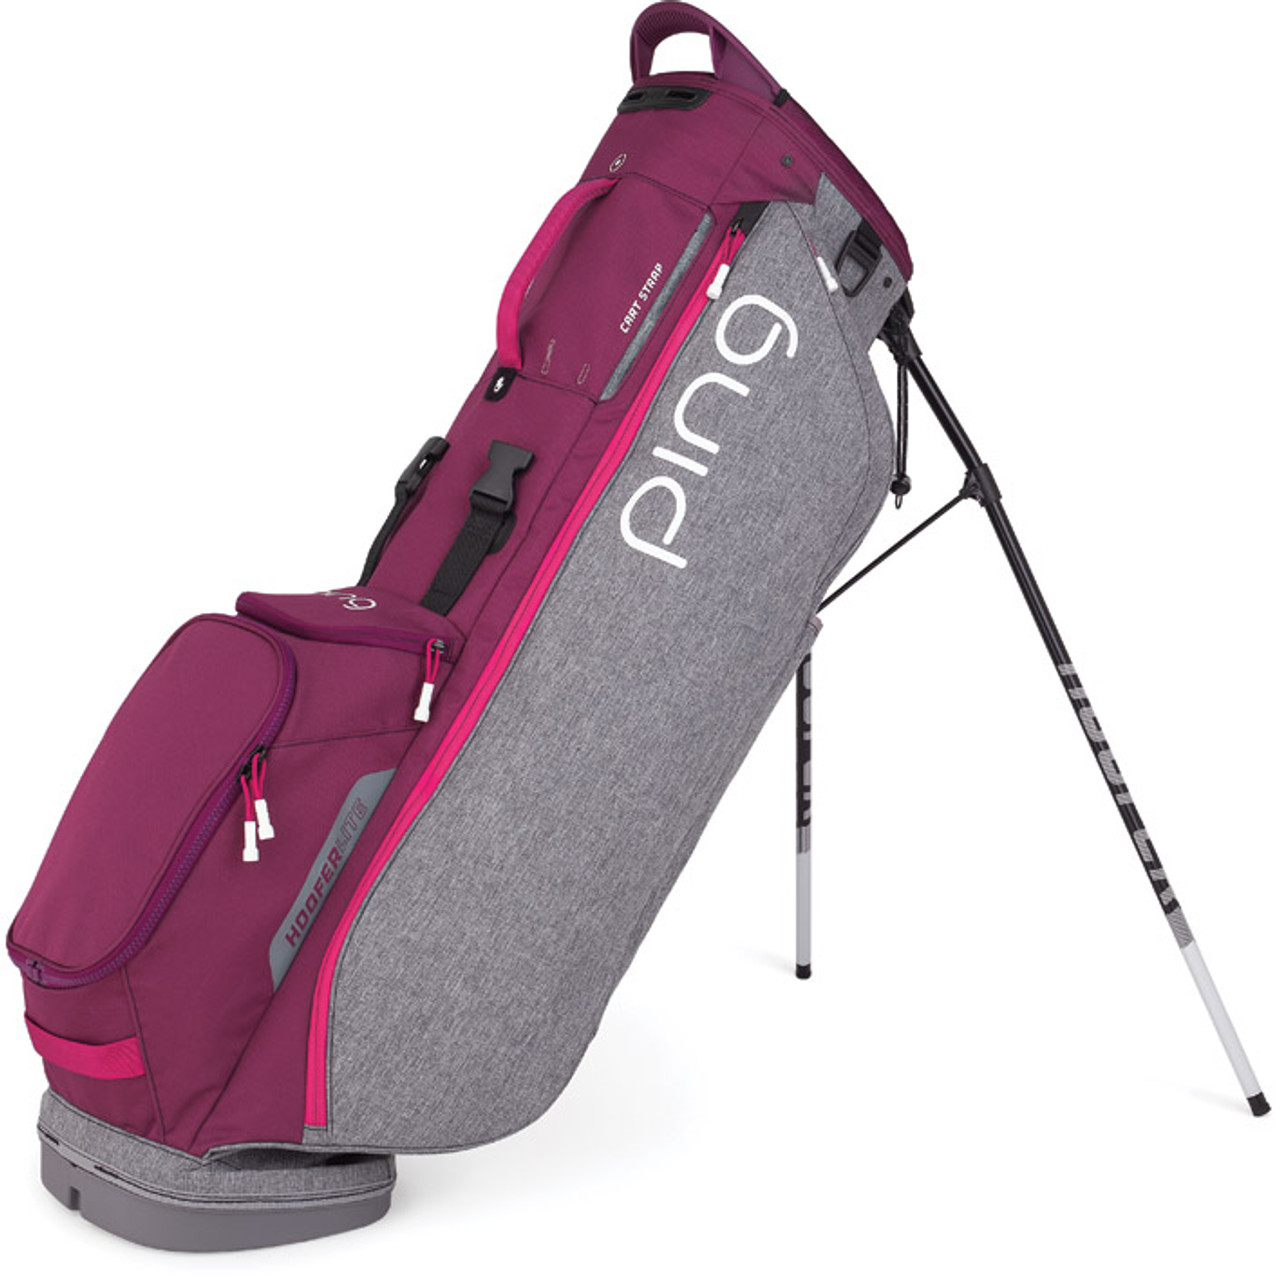 Ping Hoofer Lite Personalized Stand Bags - Heather Grey / Garnet / Magenta